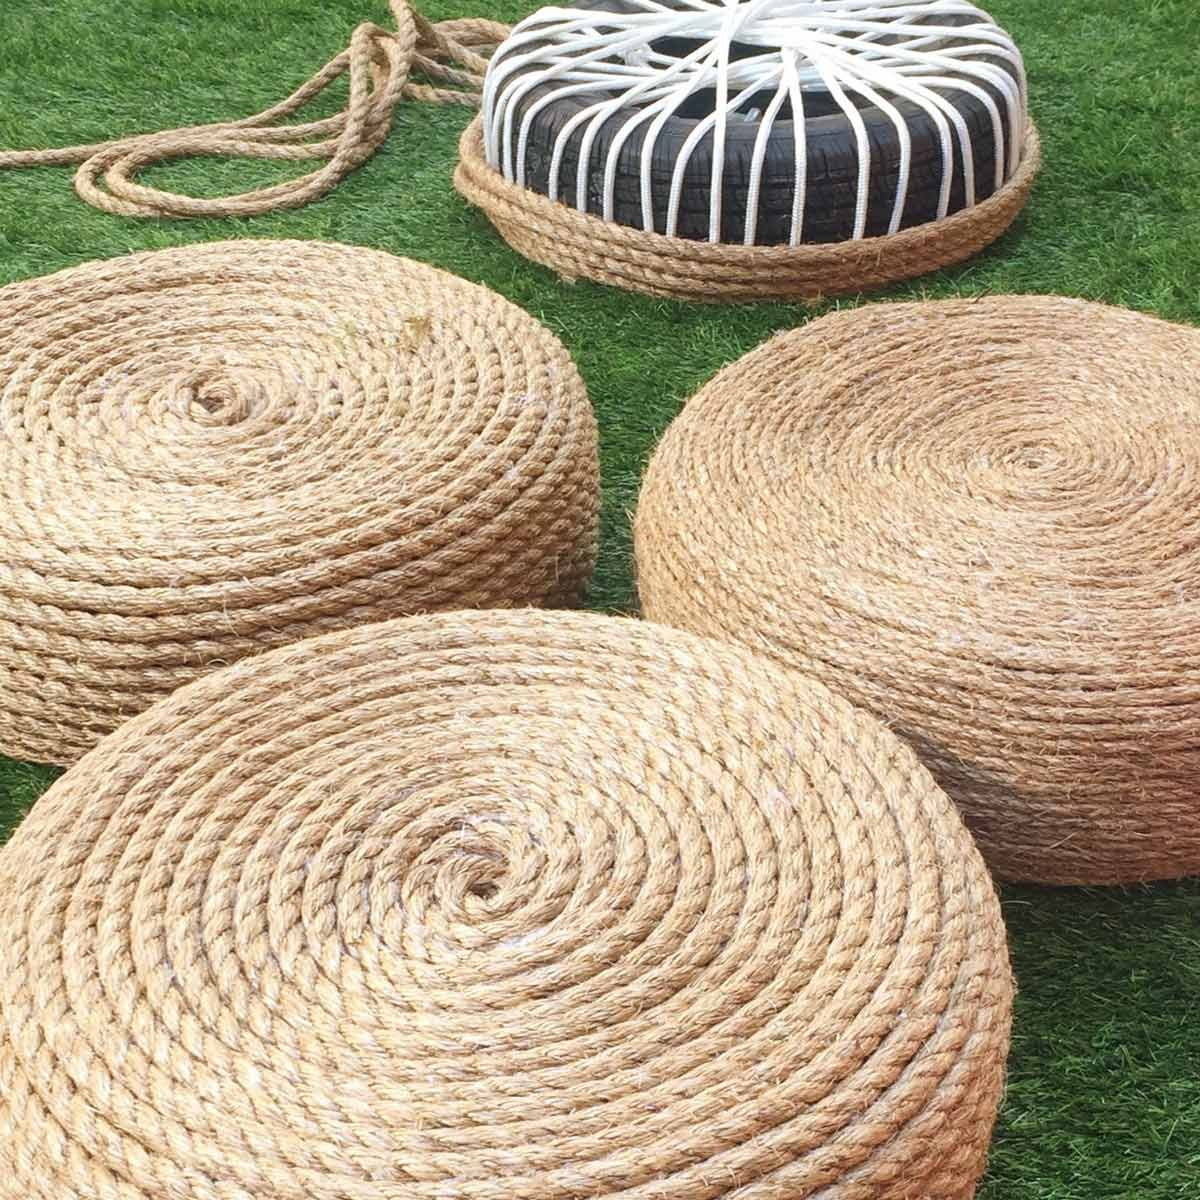 10 Beautiful Things You Can Make With Rope The Family